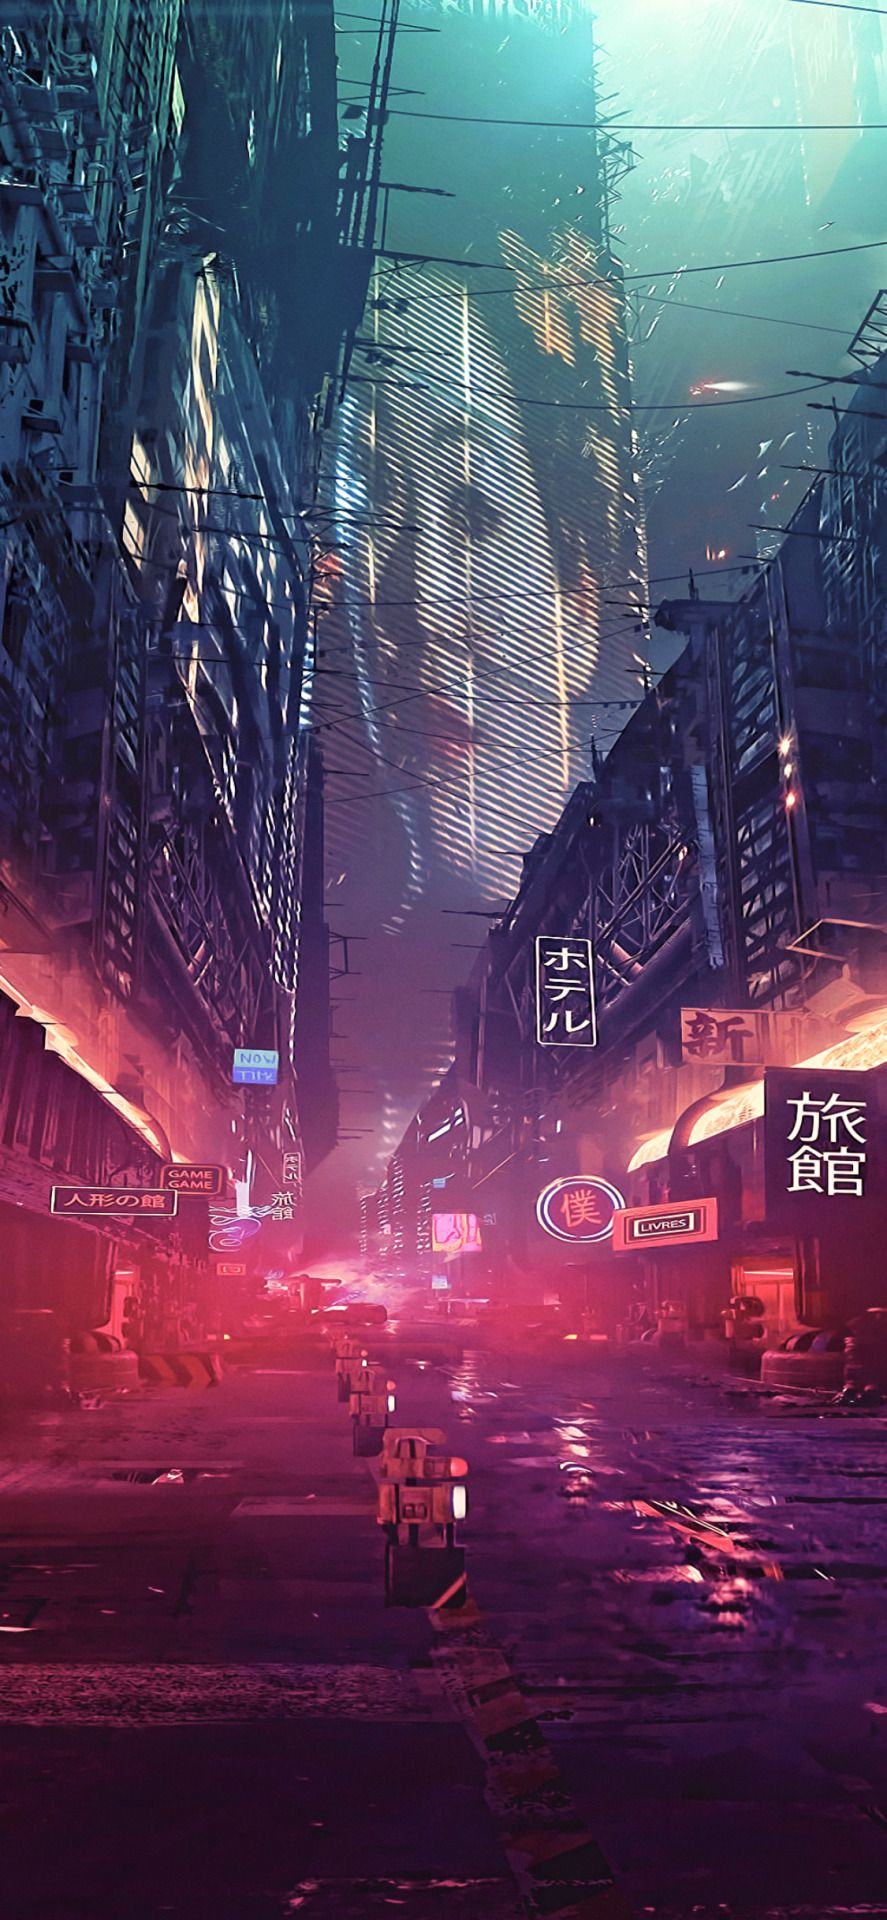 Cyberpunk Wallpaper Space Landscape Background Cyberpunk Anime